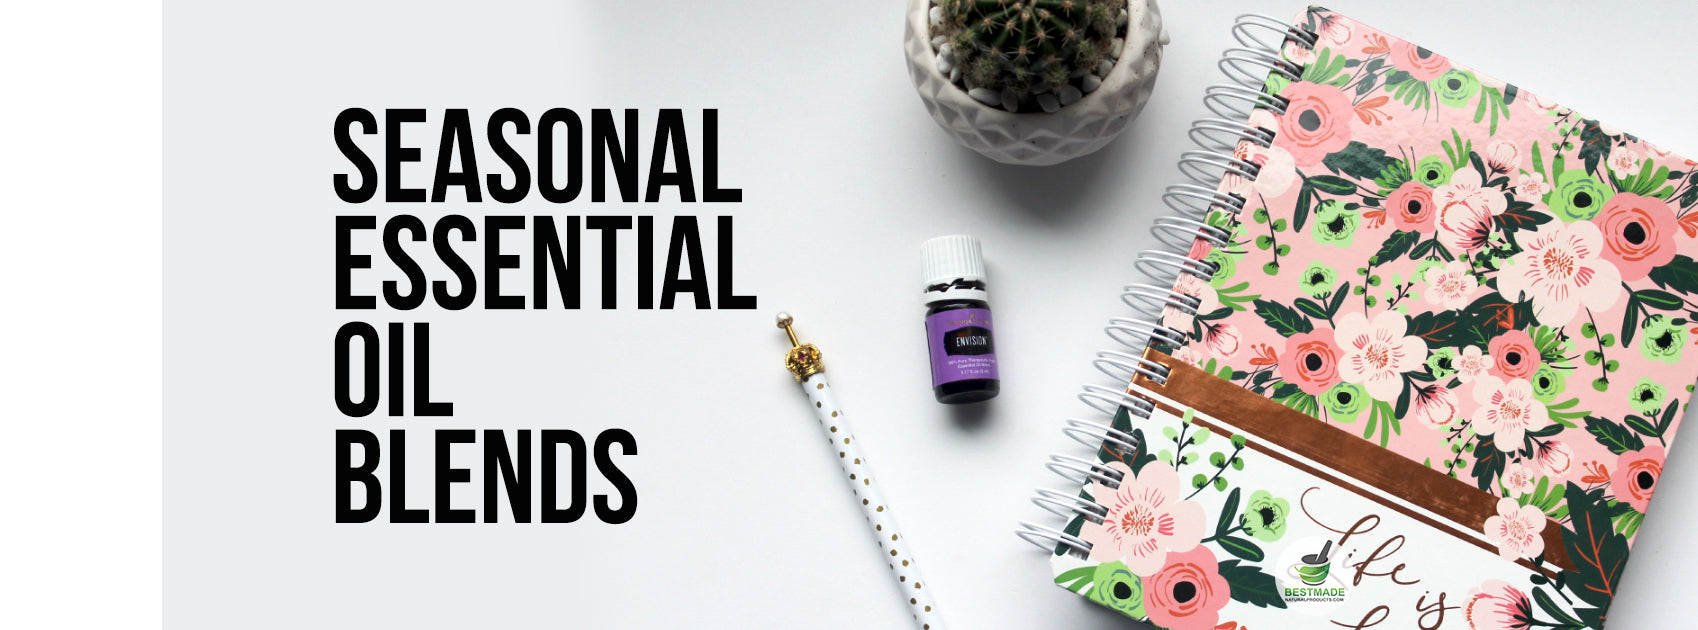 Seasonal Essential Oil Blends